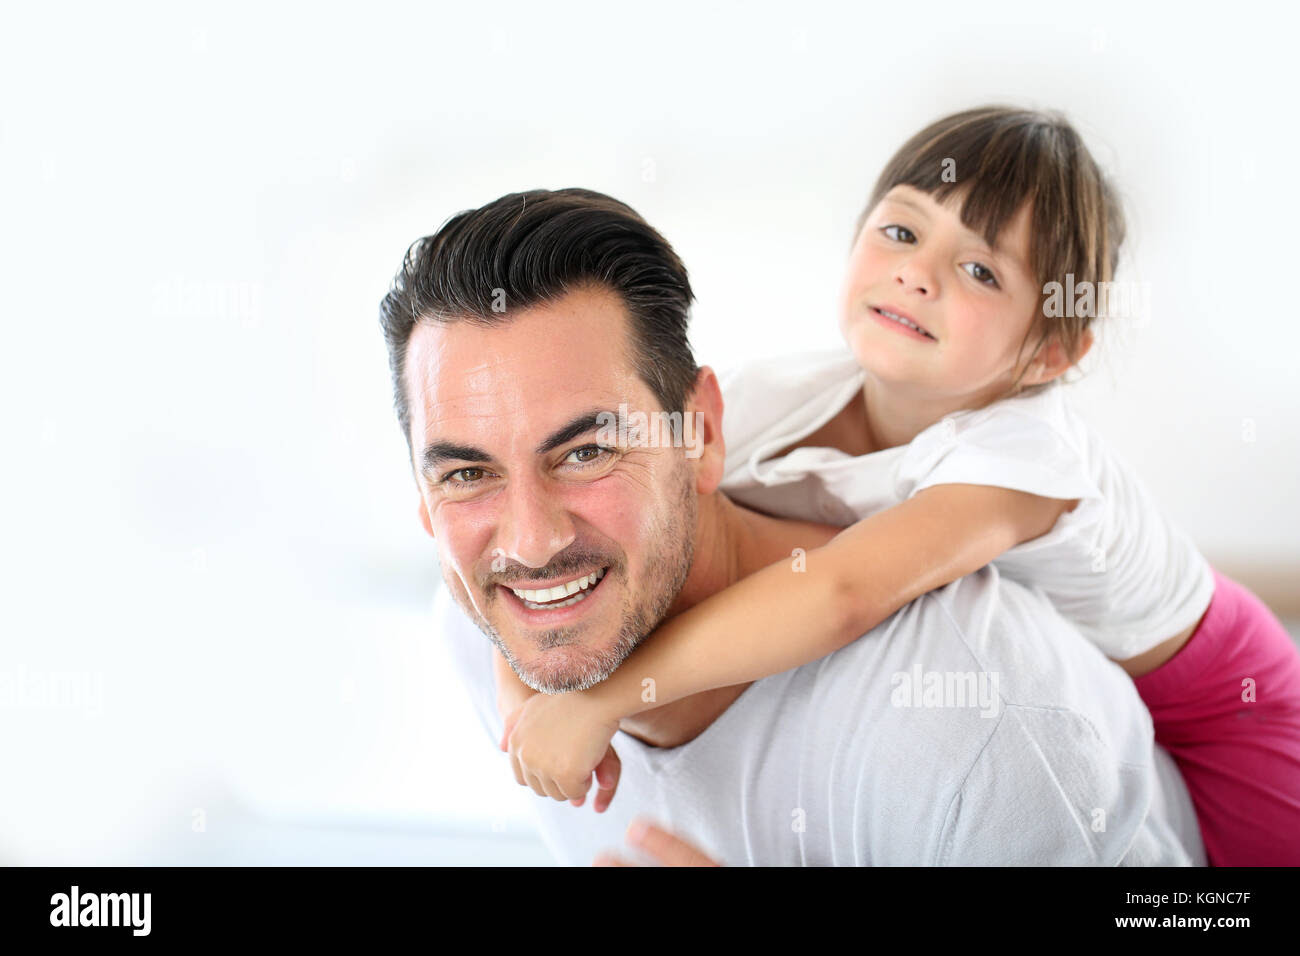 Daddy Carrying Little Girl On His Back Stock Photo 165198419 Alamy